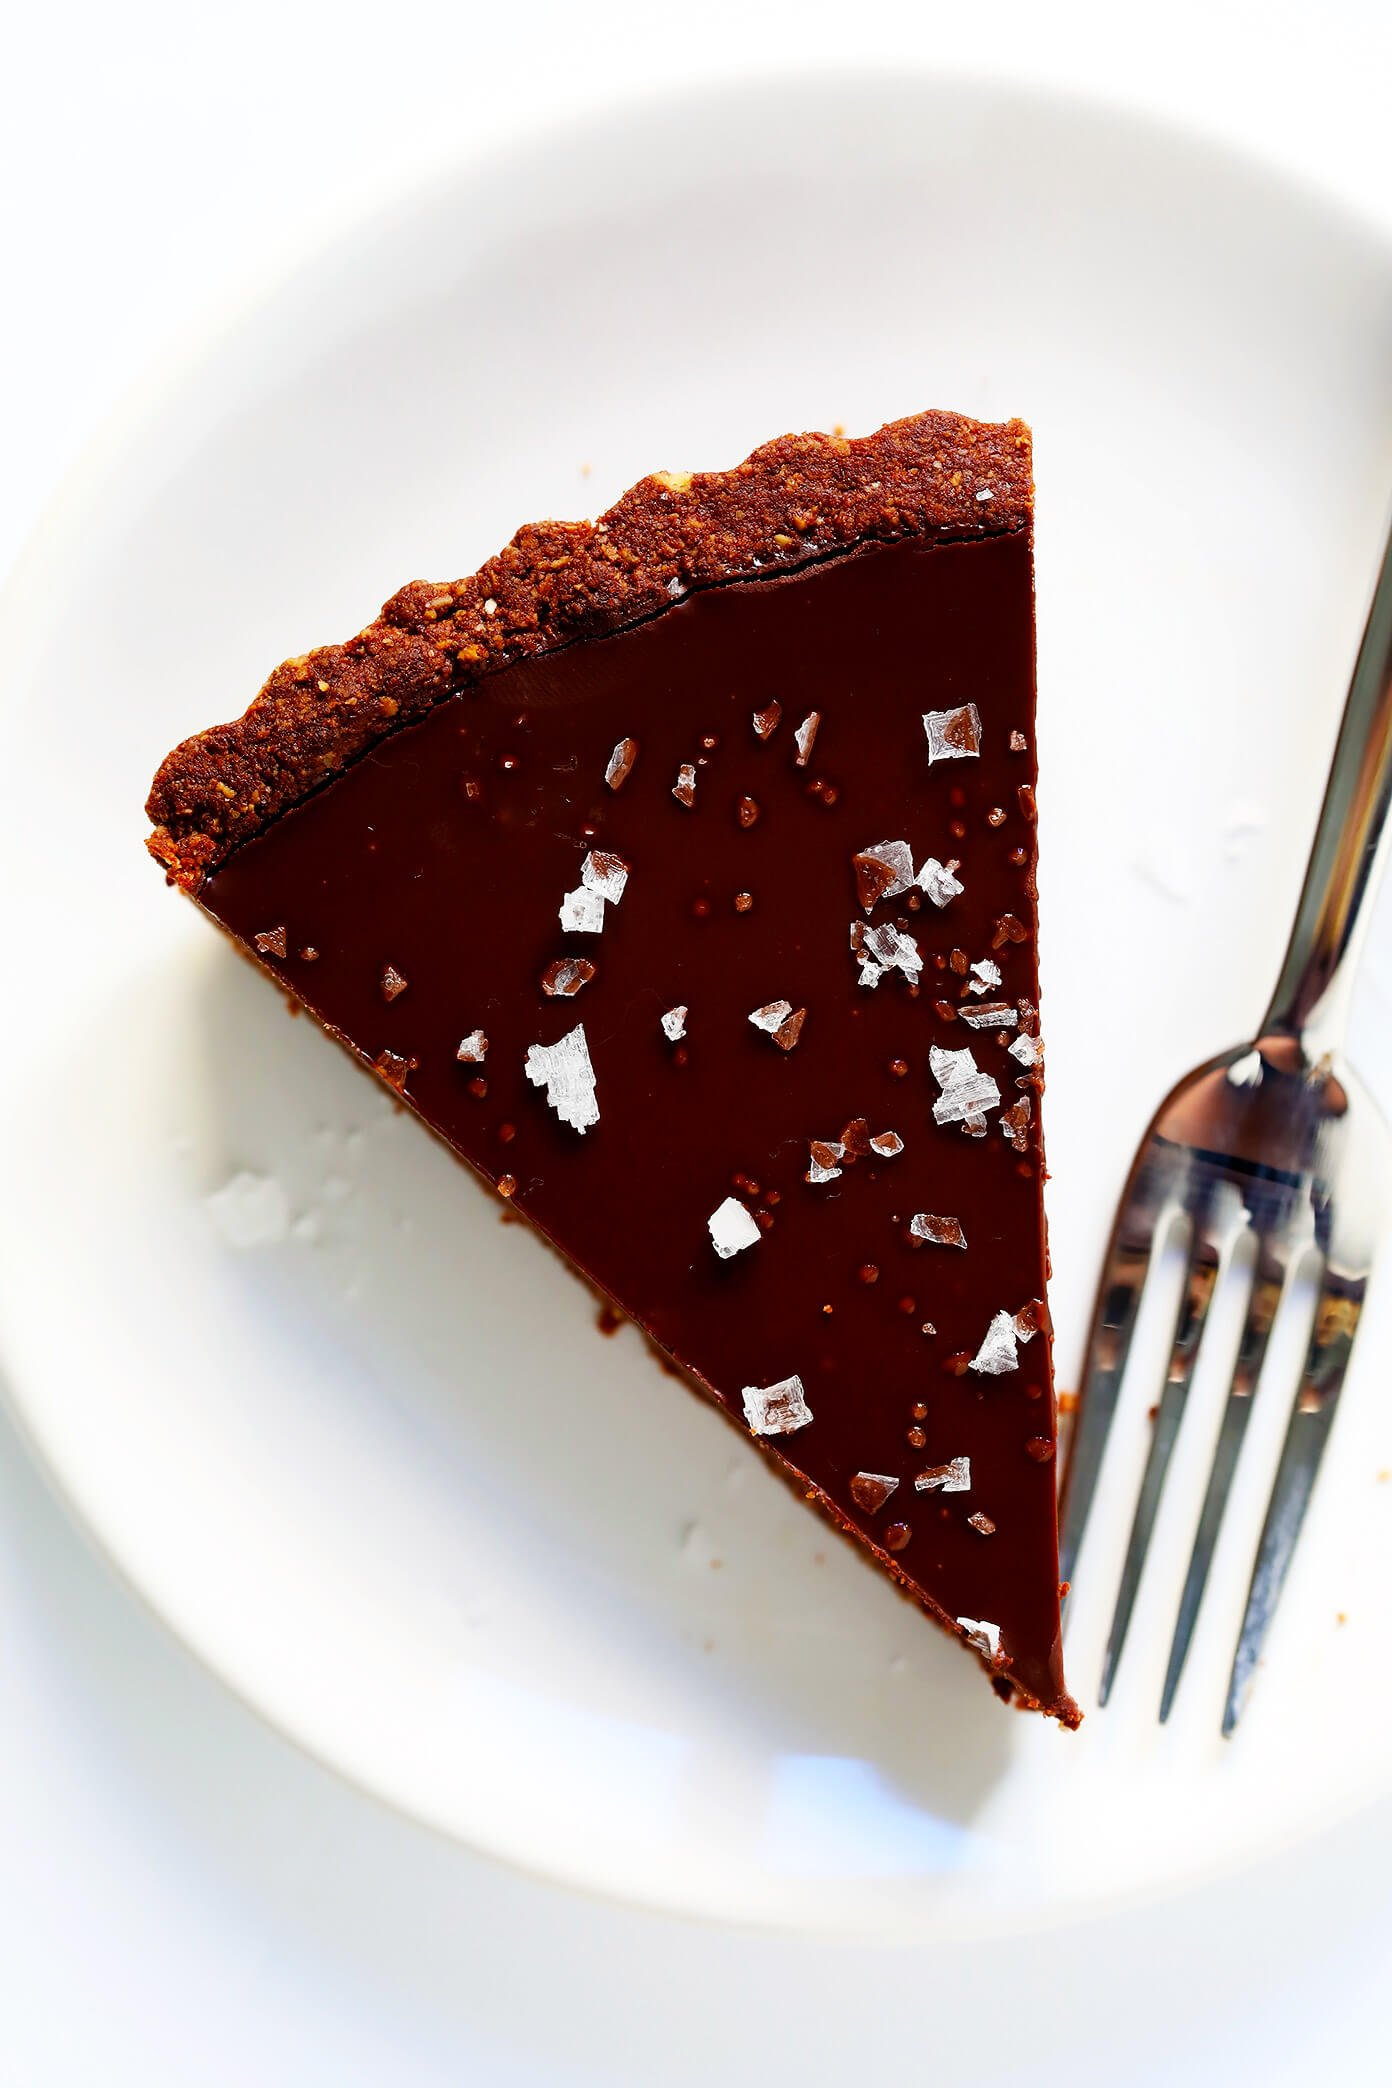 Vegan Chocolate Tart Dessert